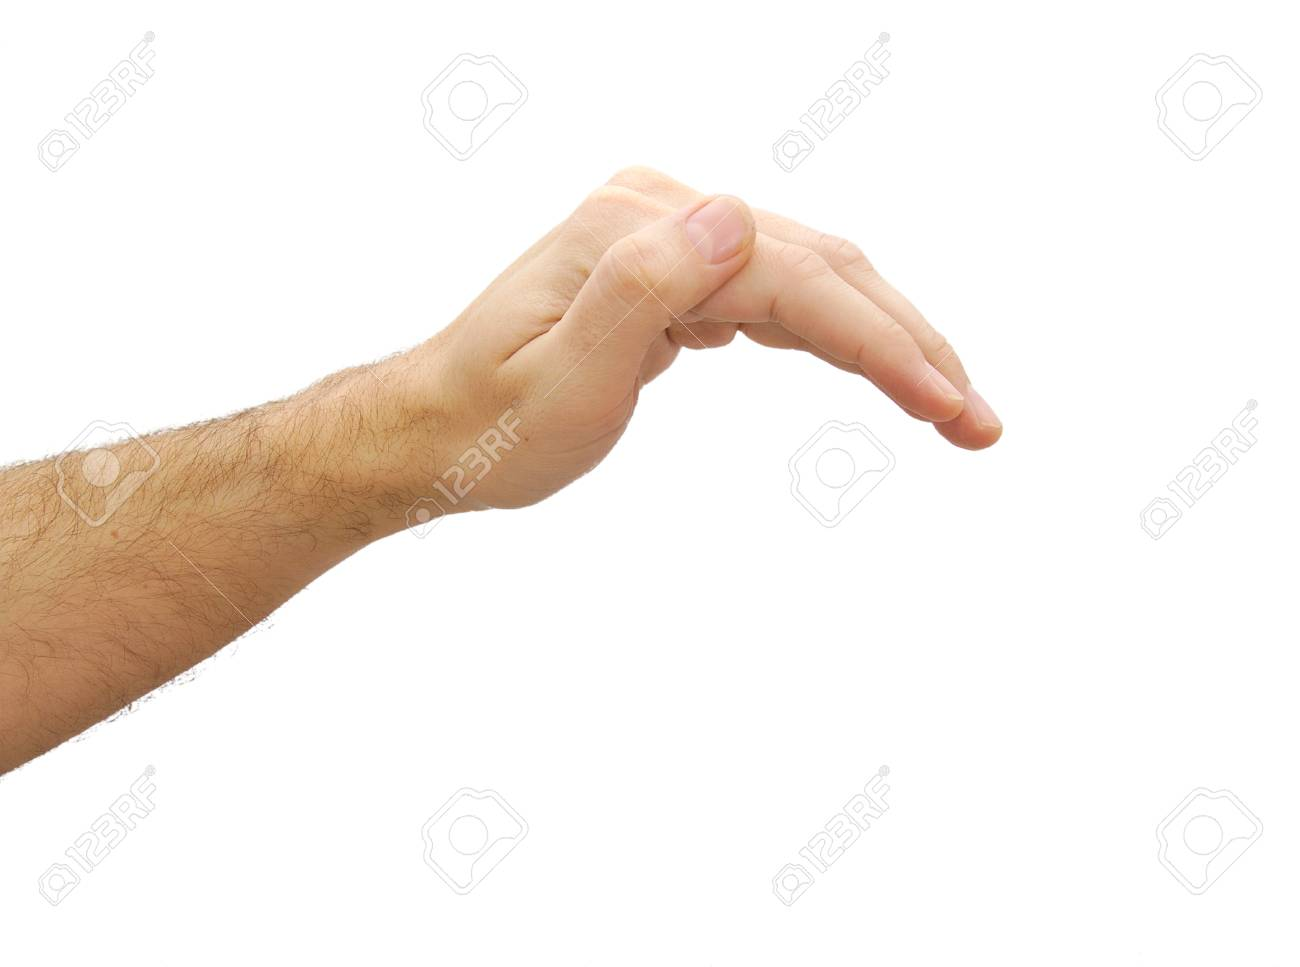 hand prepared to cover anything gesture isolated on white